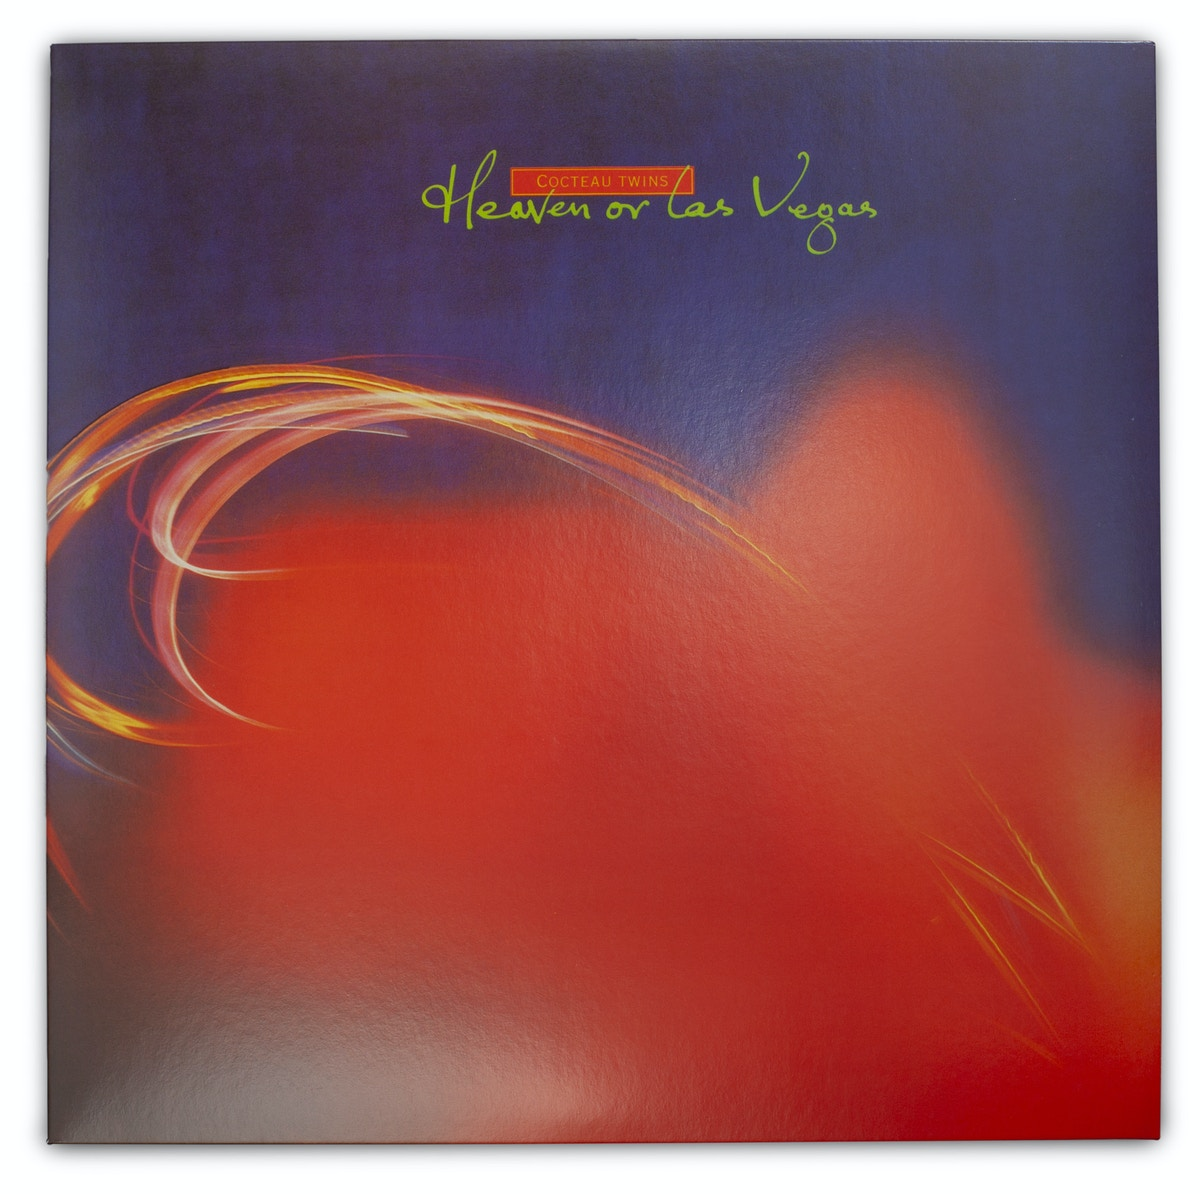 A vinyl record by The Cocteau Twins